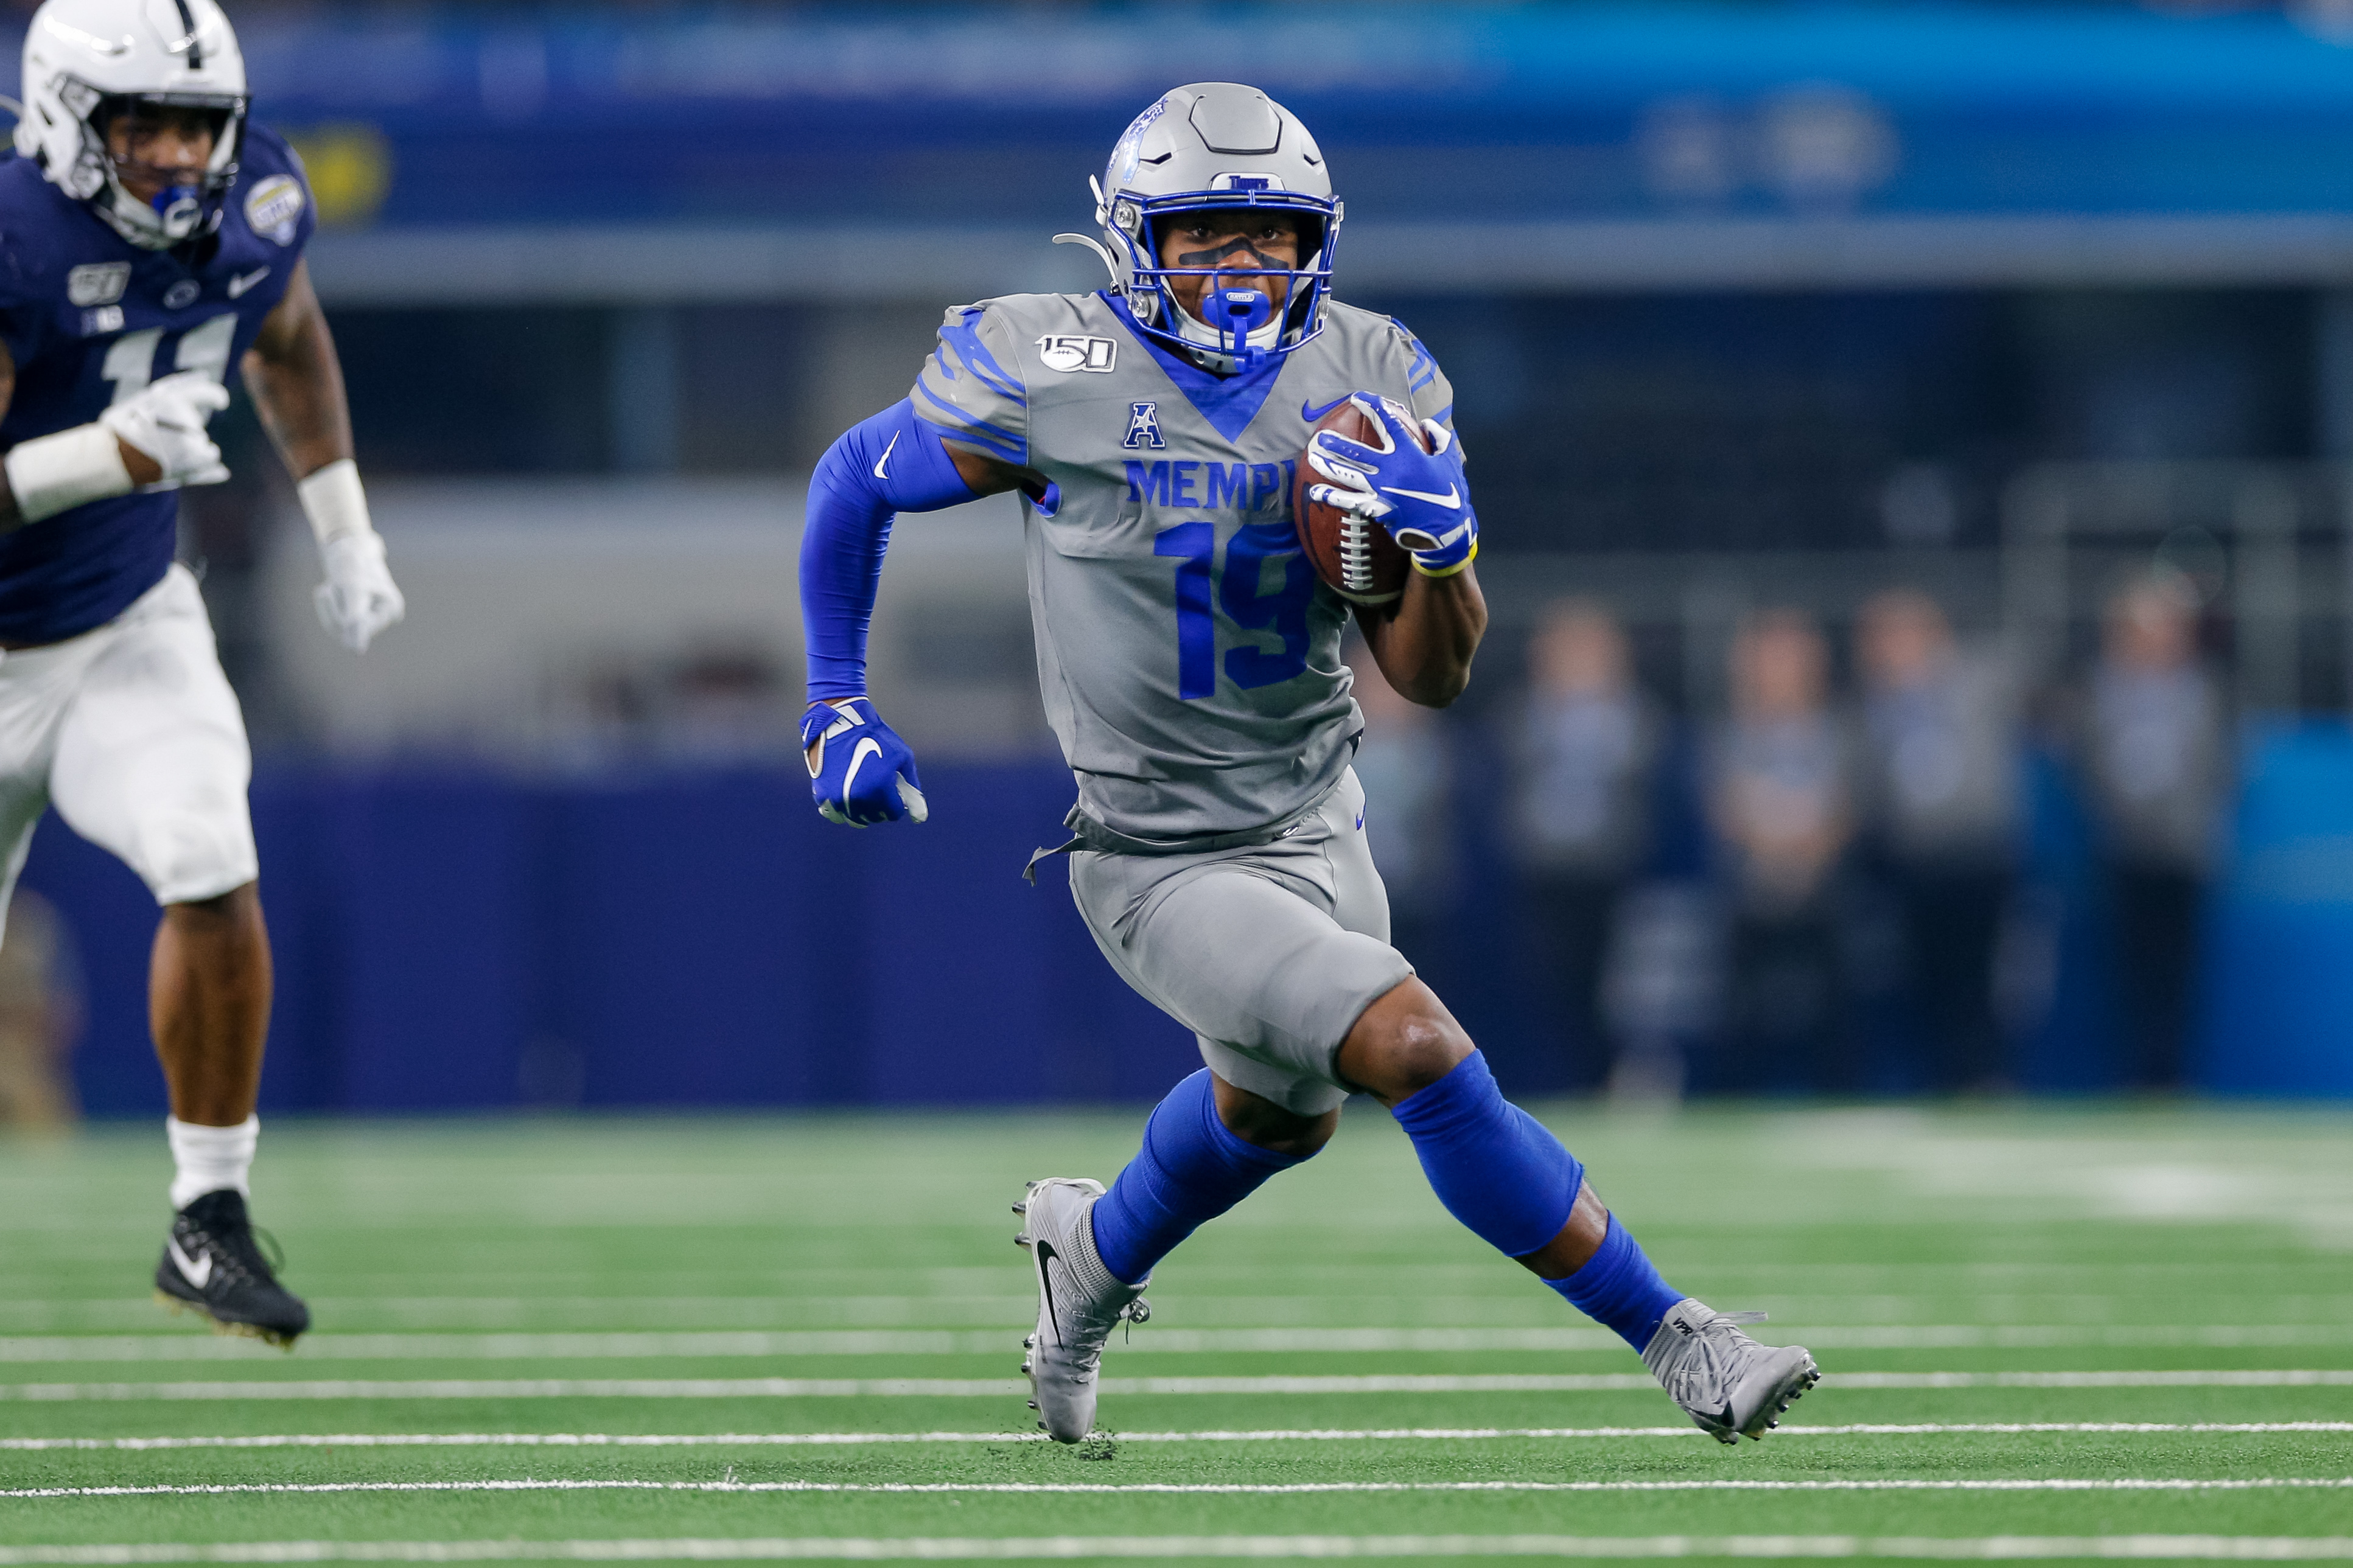 Memphis Tigers running back Kenneth Gainwell (19) rushes during the Cotton Bowl Classic between the Memphis Tigers and Penn State Nittany Lions on December 28, 2019 at AT&T Stadium in Arlington, TX.